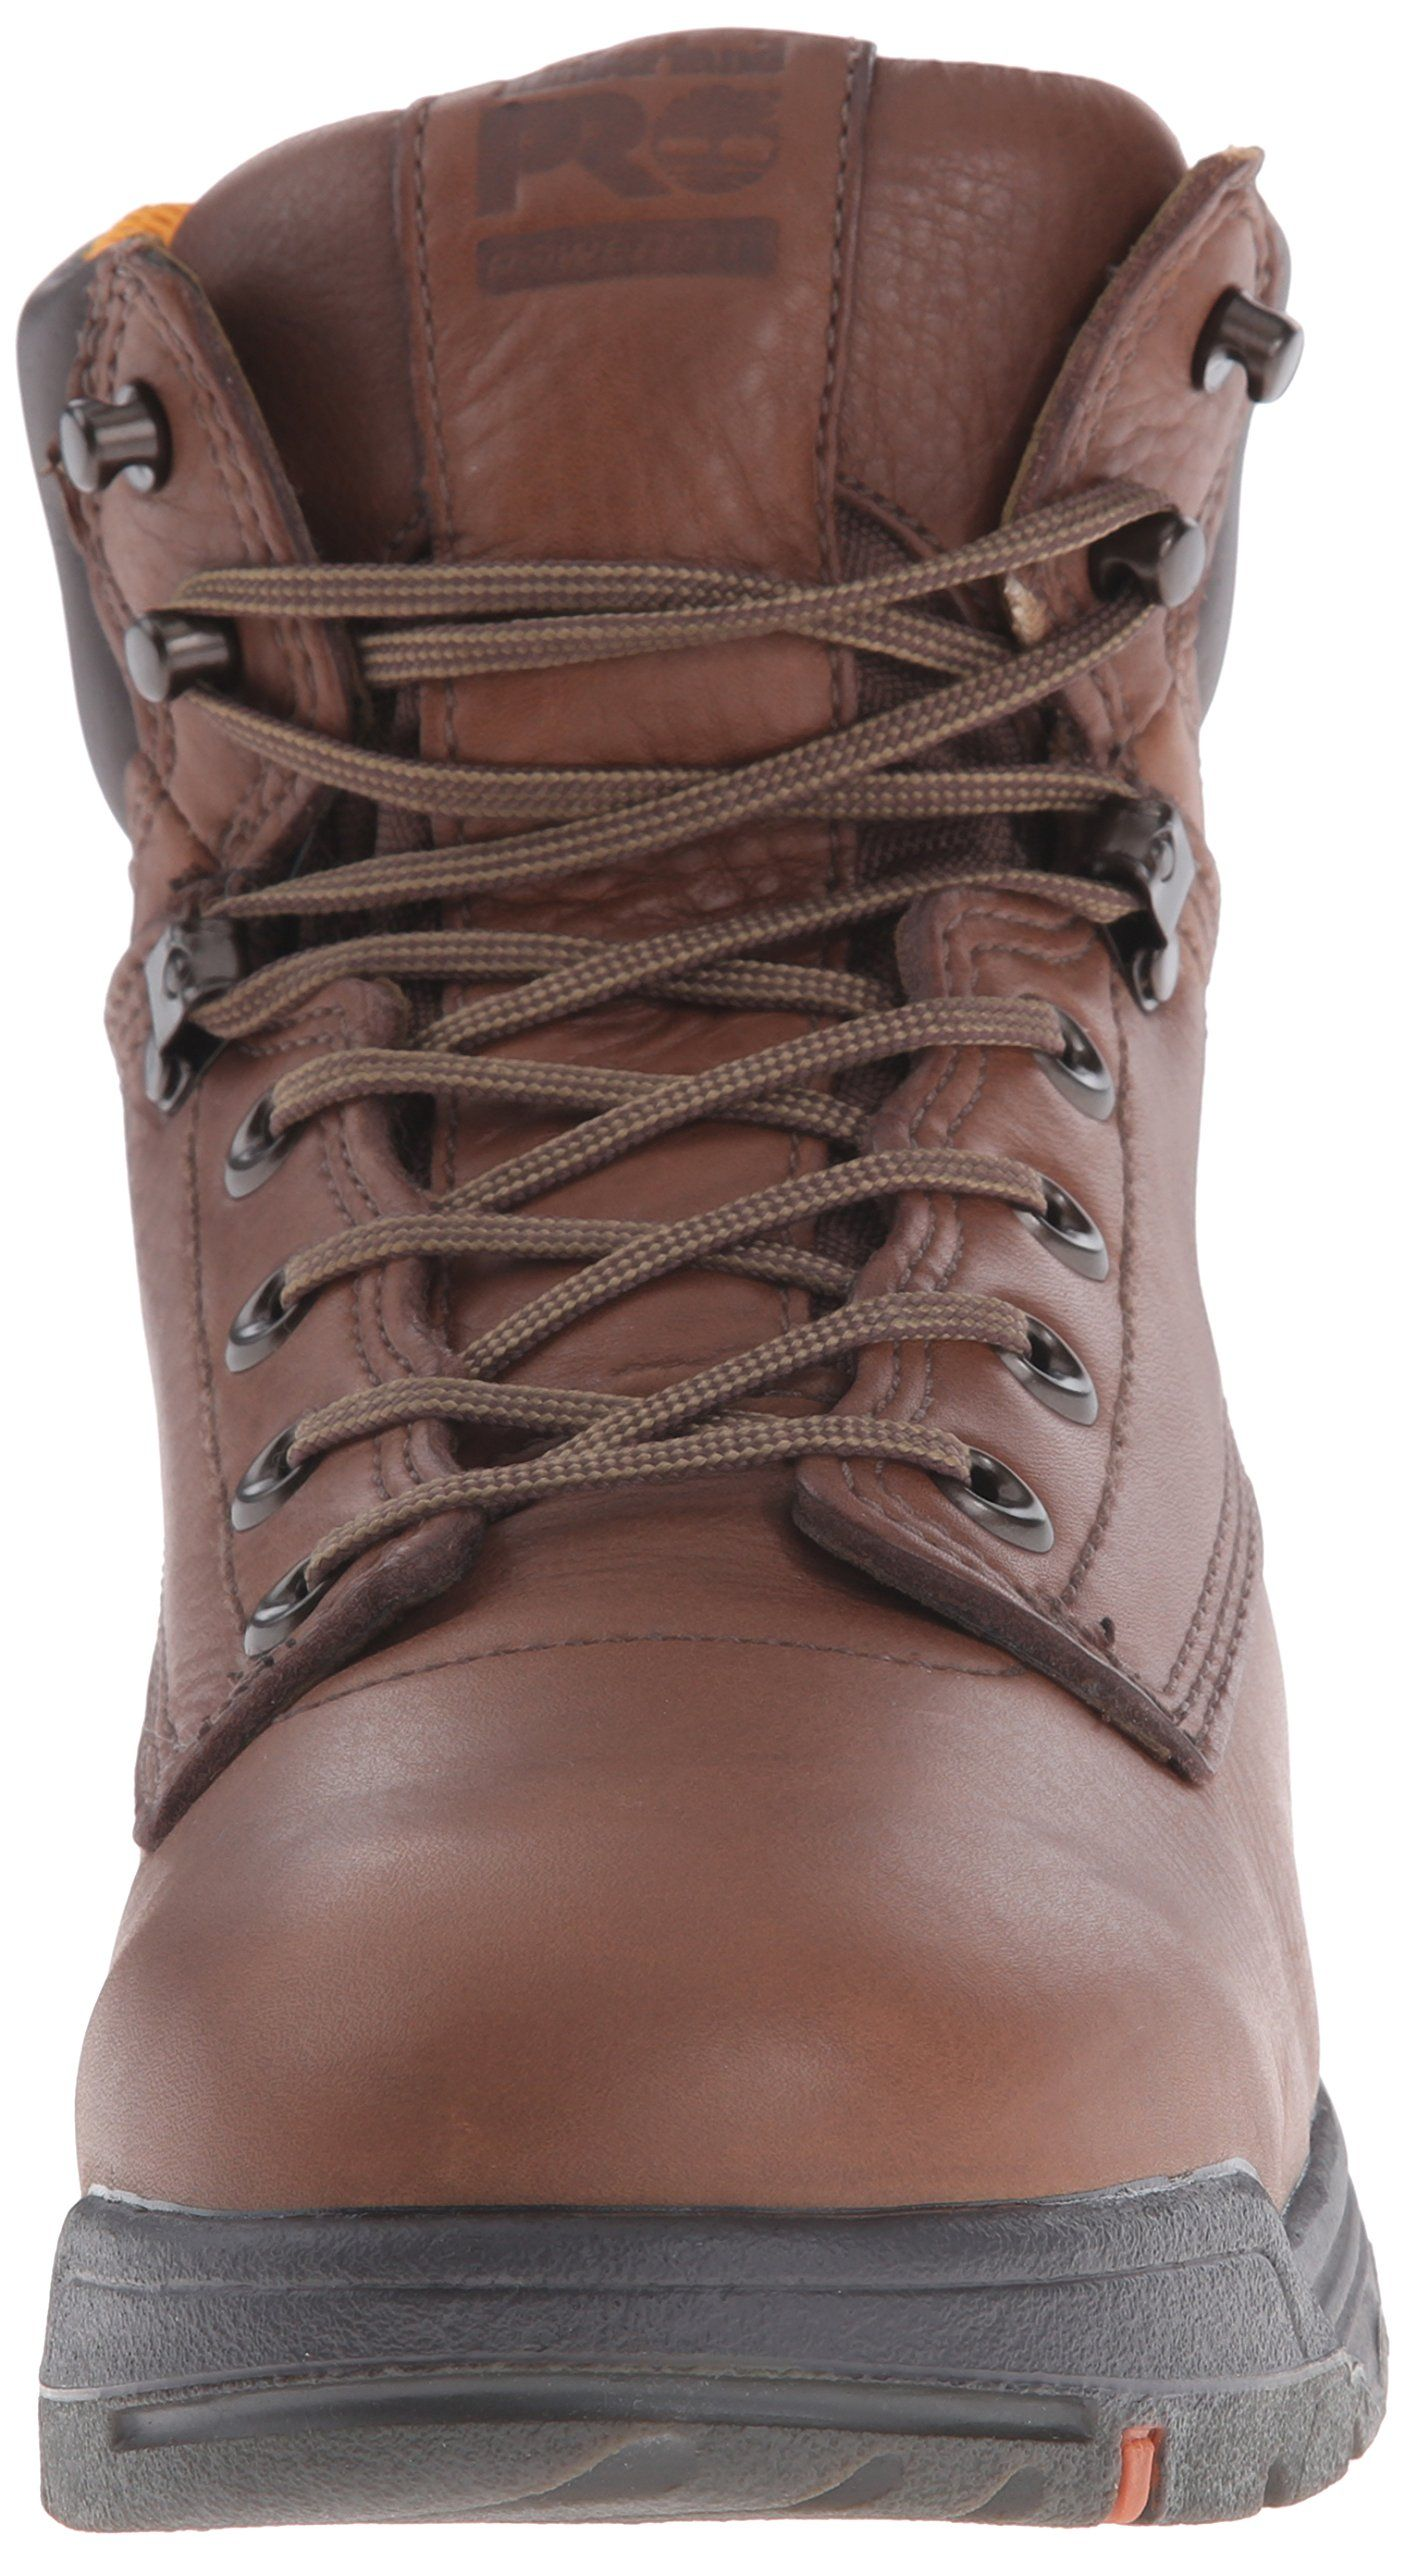 9525fd2d5e3 Timberland Pro Mens Titan 6 Coffee SoftToe BootBrown/Brown9.5 M ...